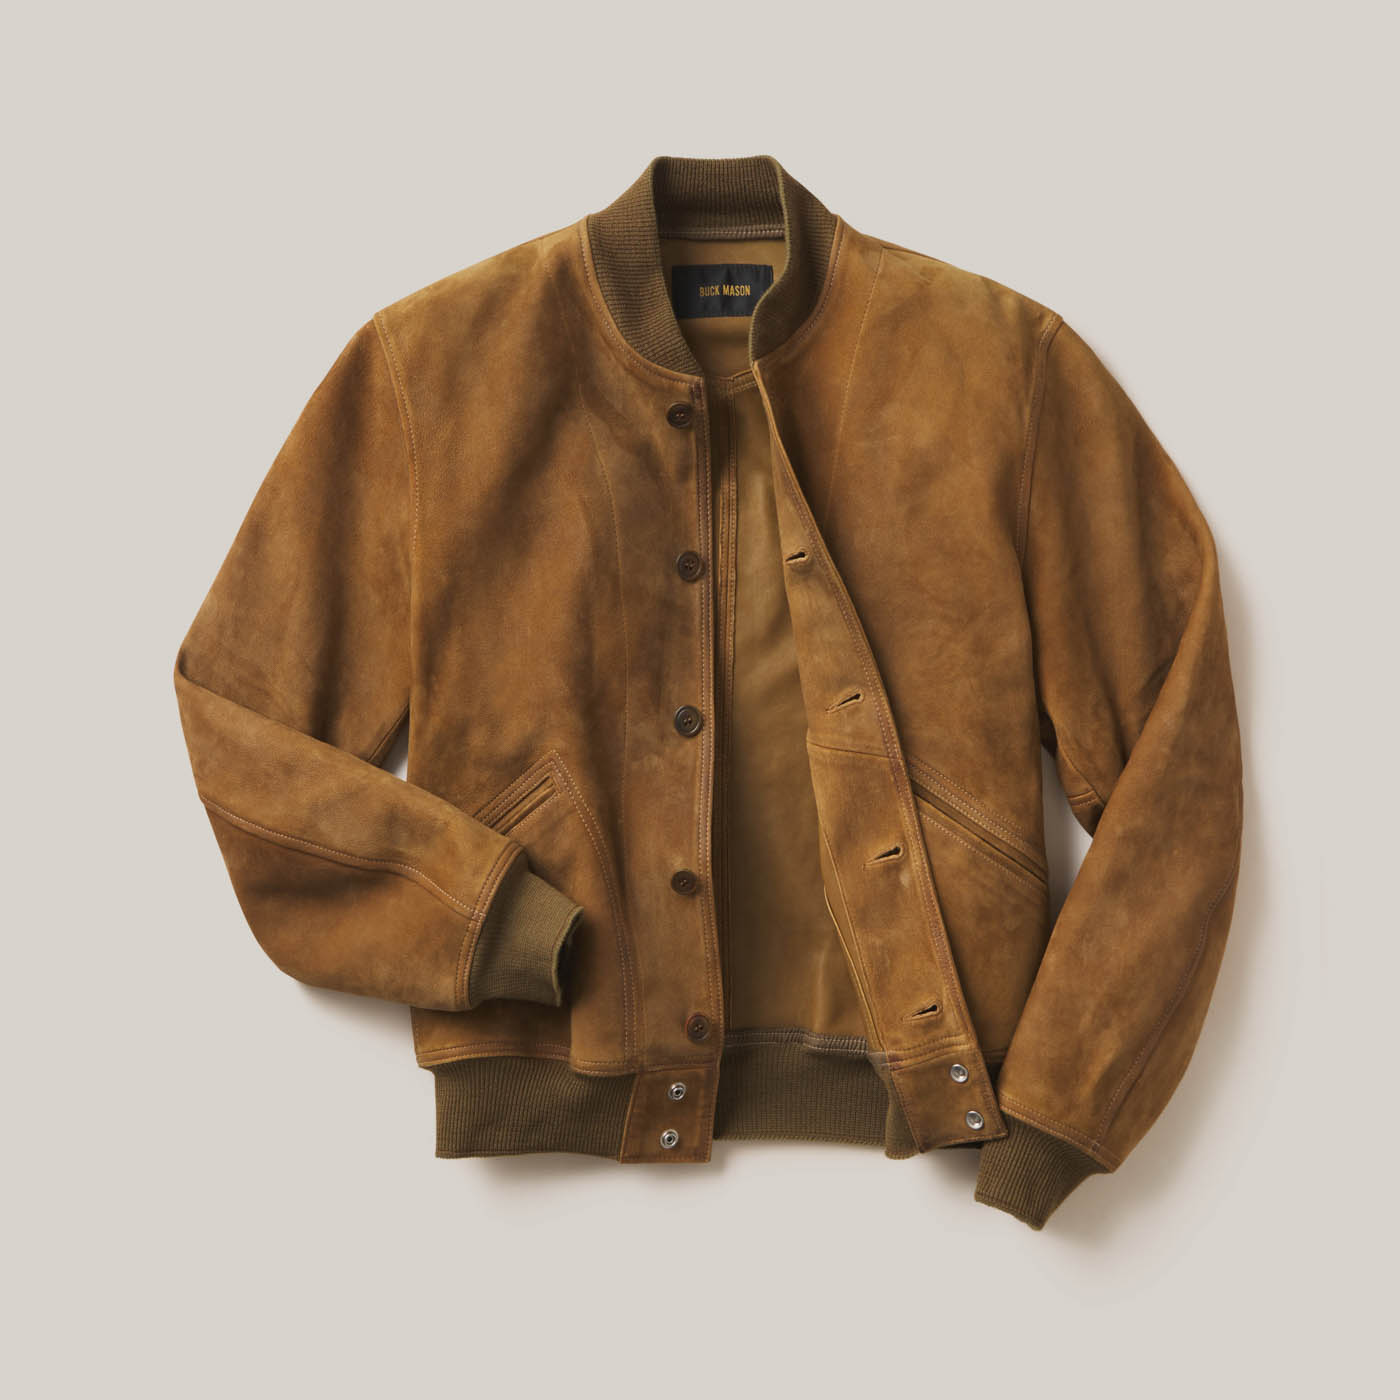 buck-mason-damion-lloyd-commercial-photography-product-clothing-editorial-overhead-pants-shirt-jacket-suede-brown